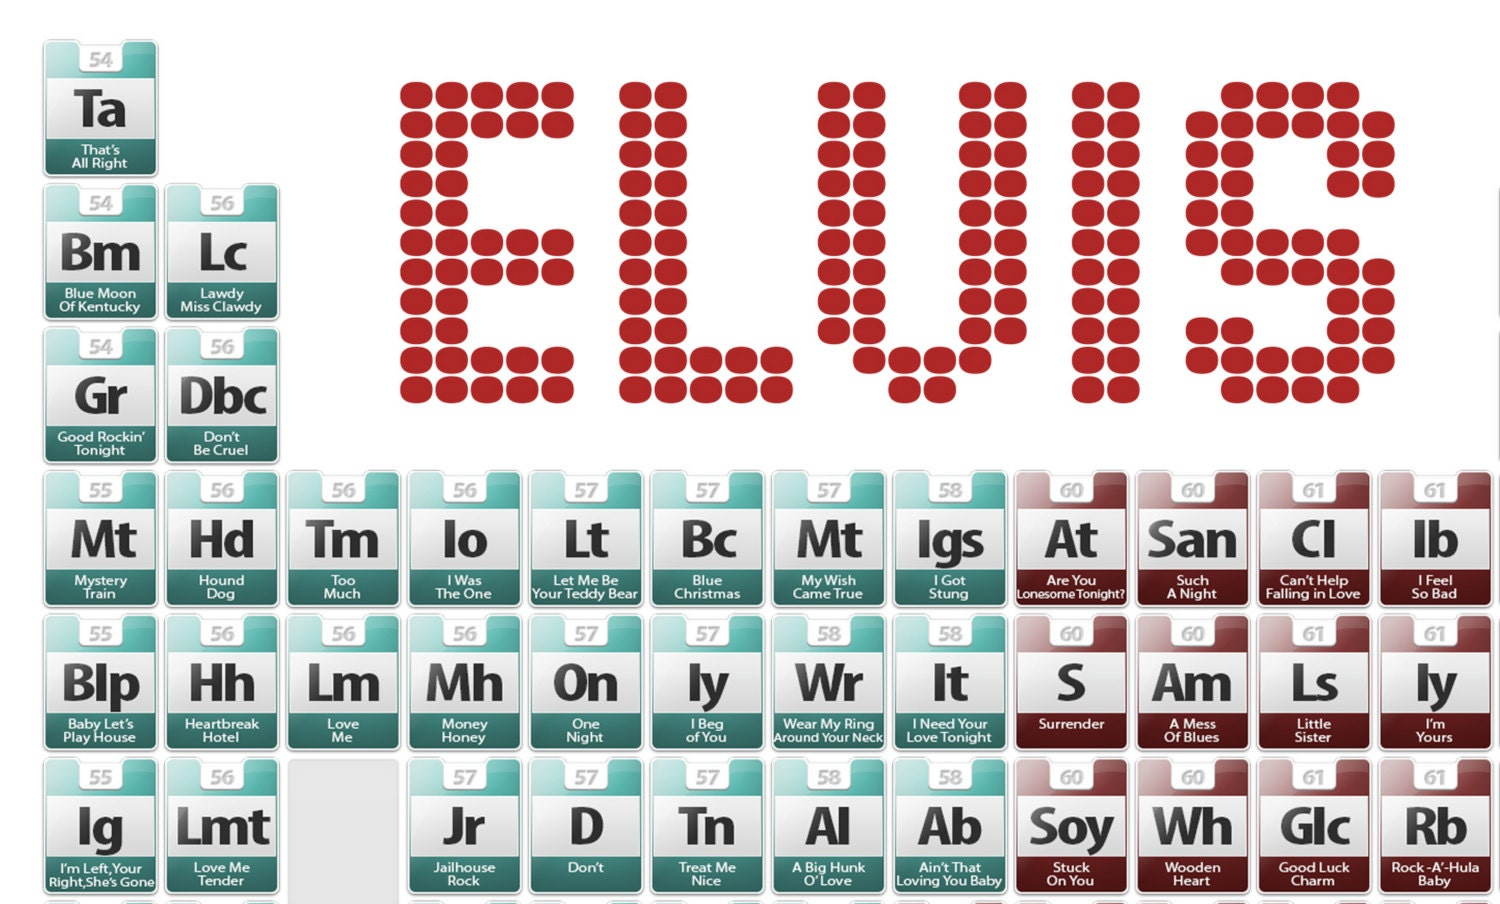 Elvis presley discography periodic table poster gamestrikefo Choice Image